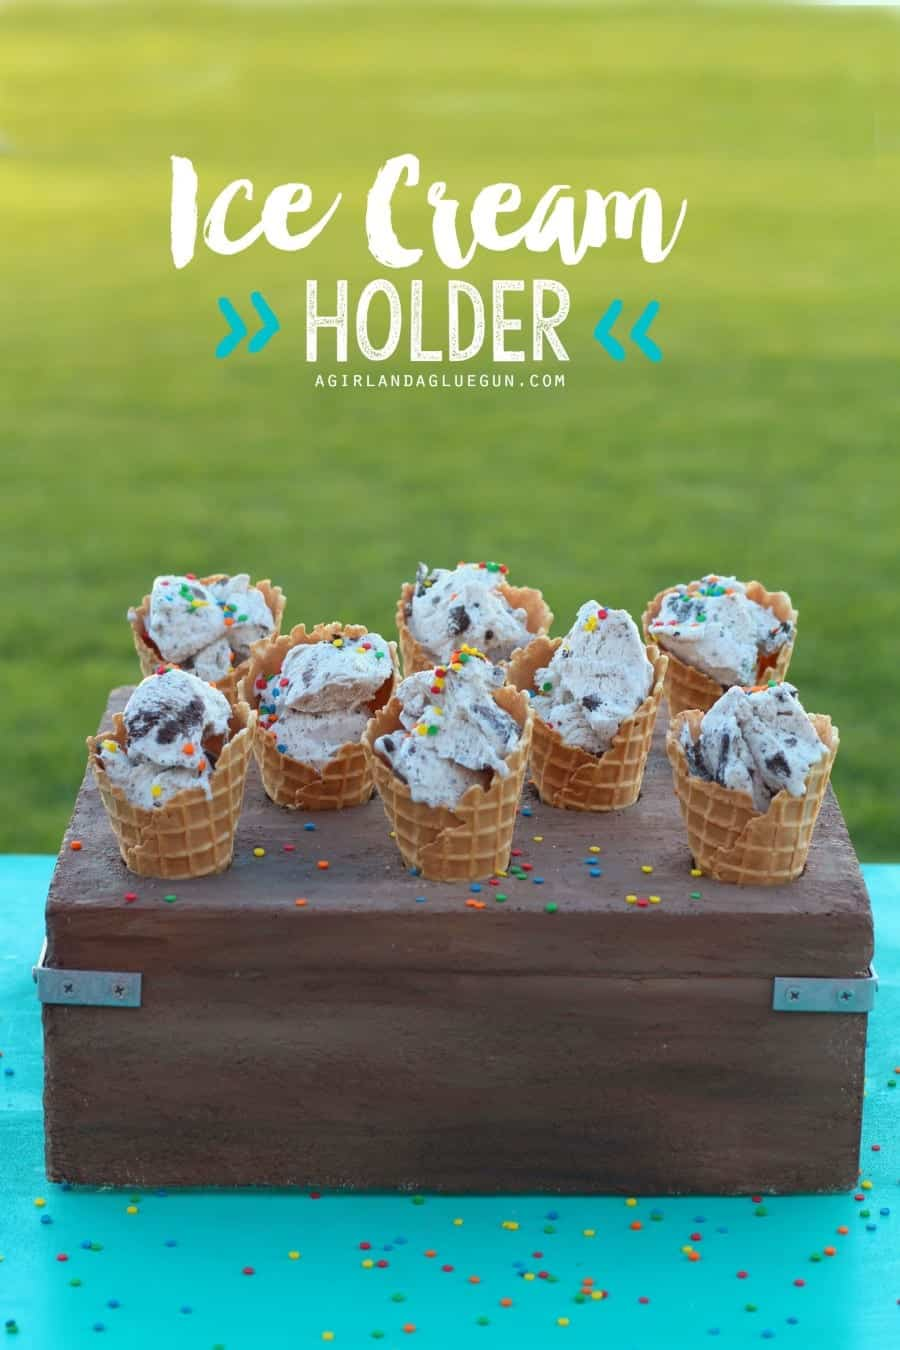 Ice cream cone holder for party